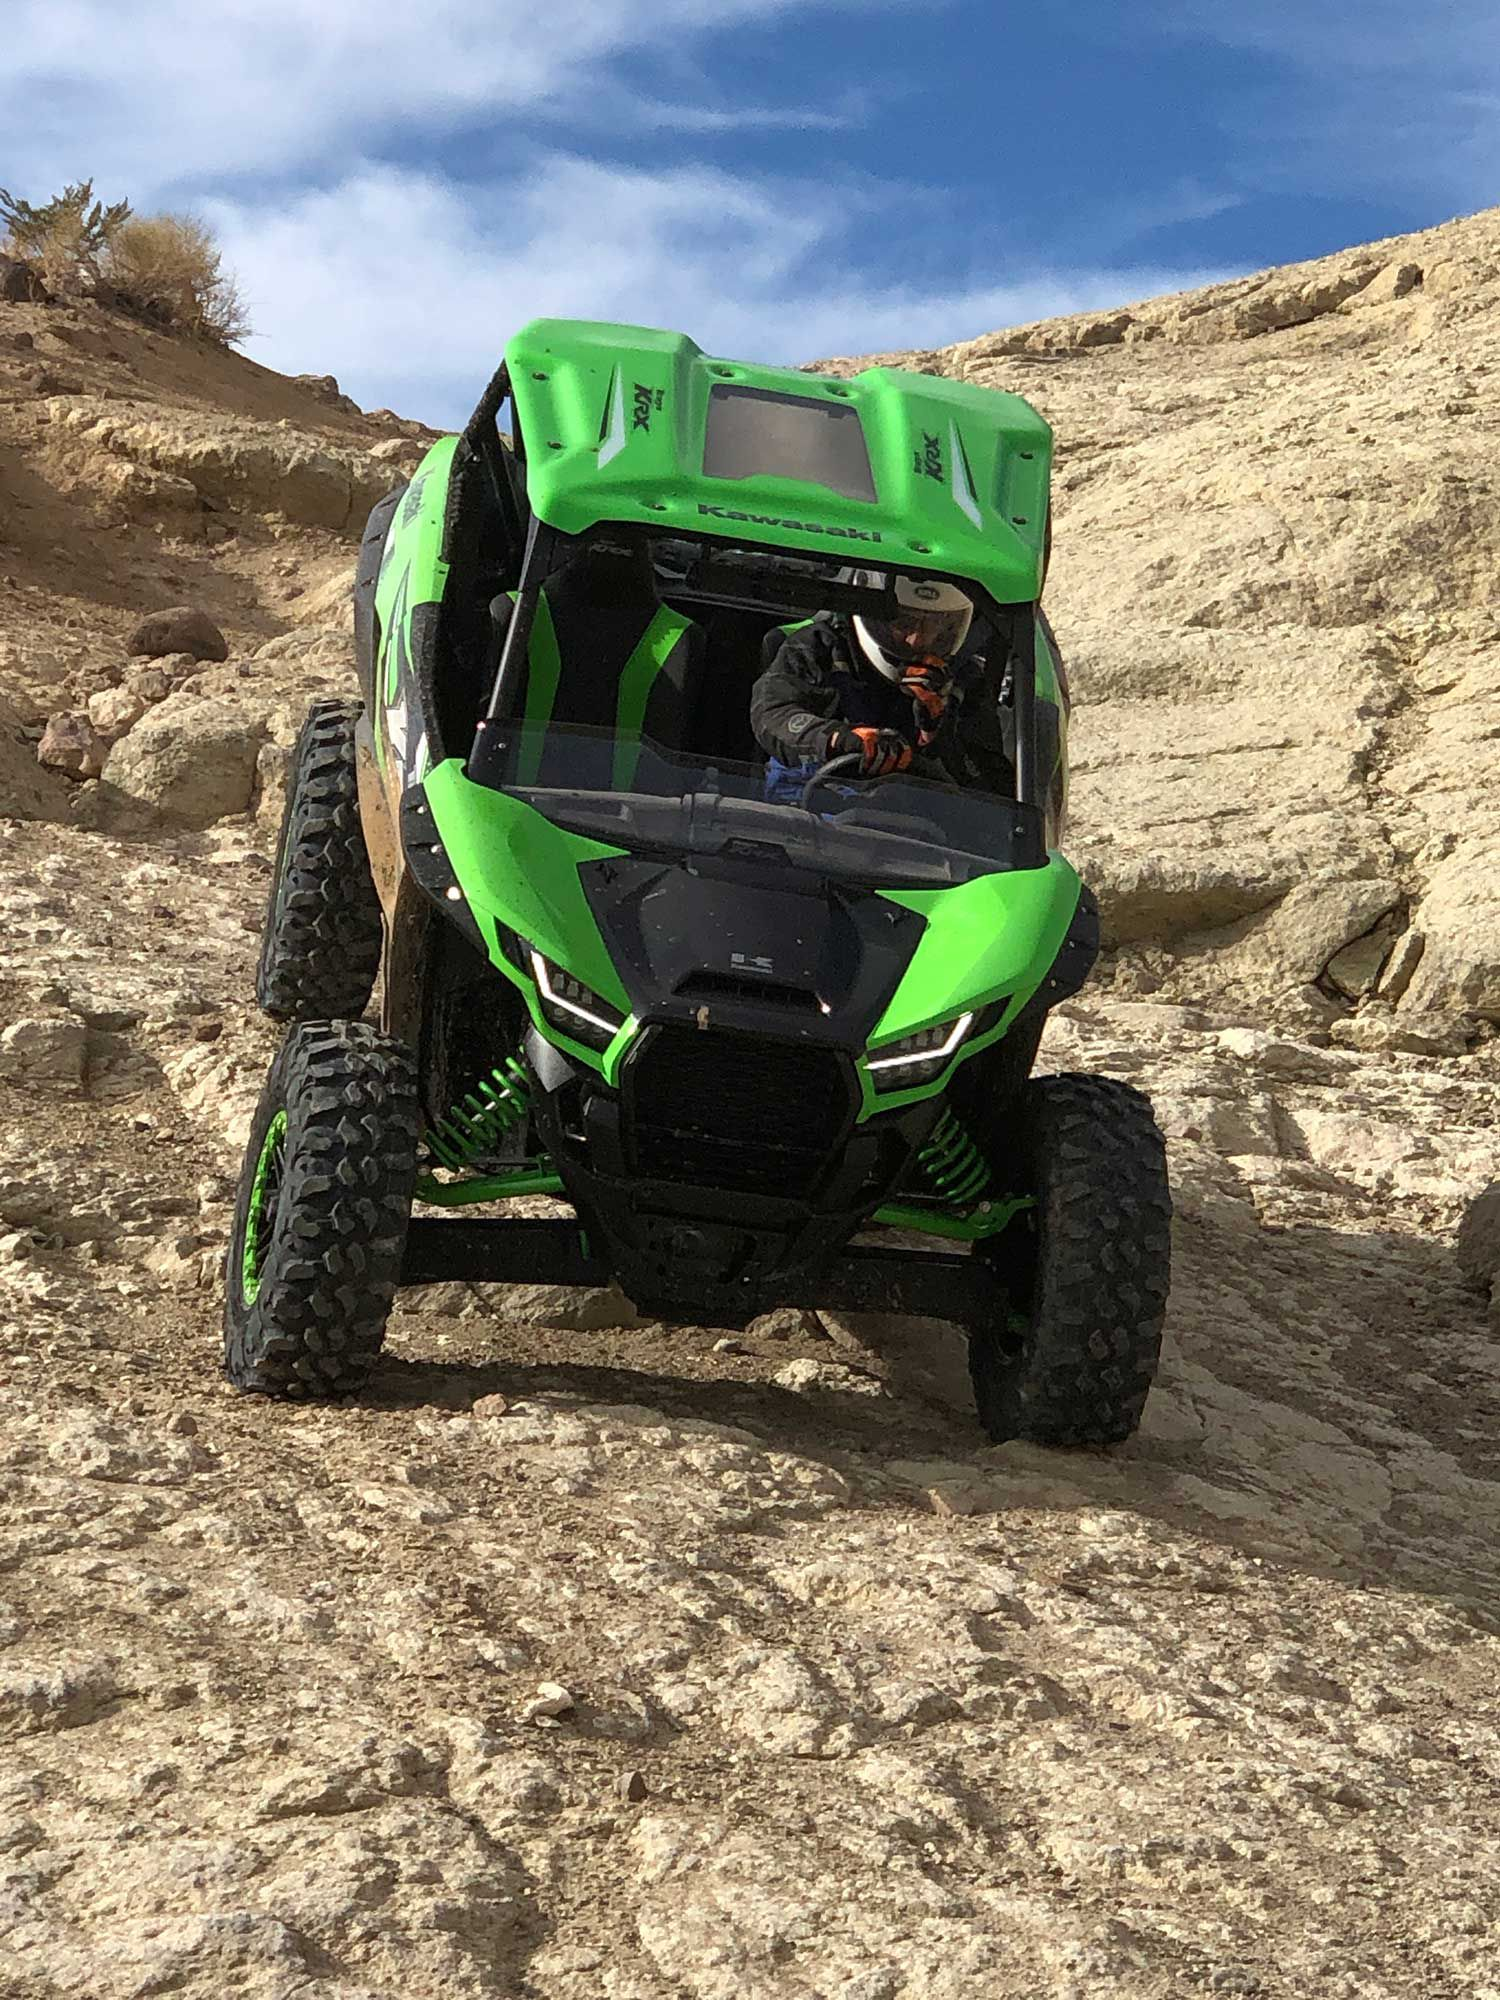 A Kawasaki rep demonstrates the proper line, speed, and rear-wheel lift on one of the more torturous downhills.